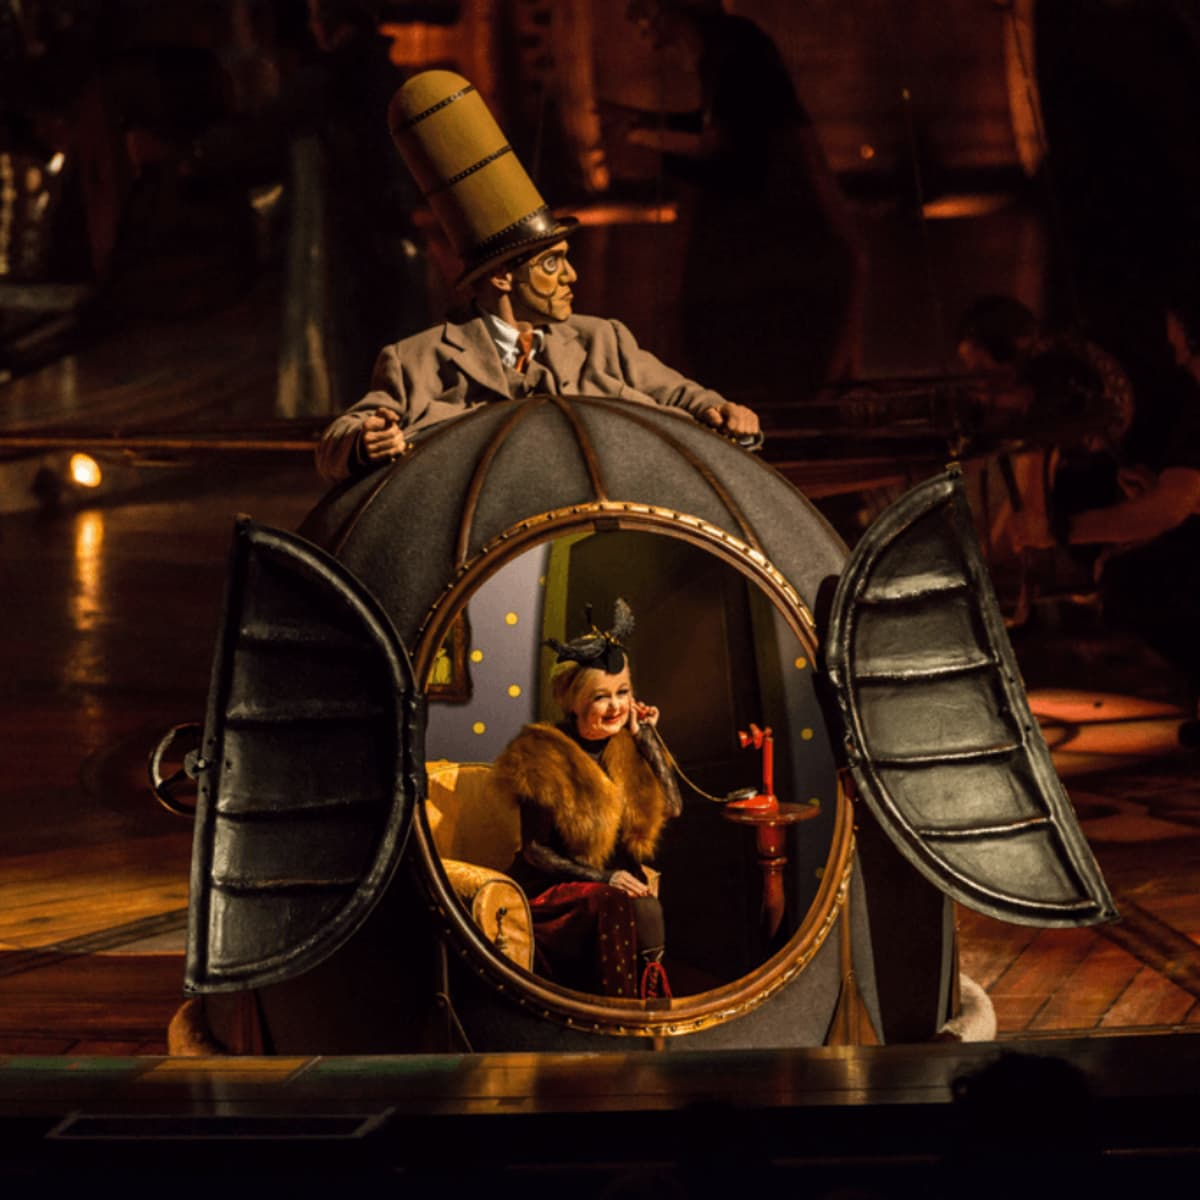 Cirque du Soleil presents Kurios: Cabinet of Curiosities